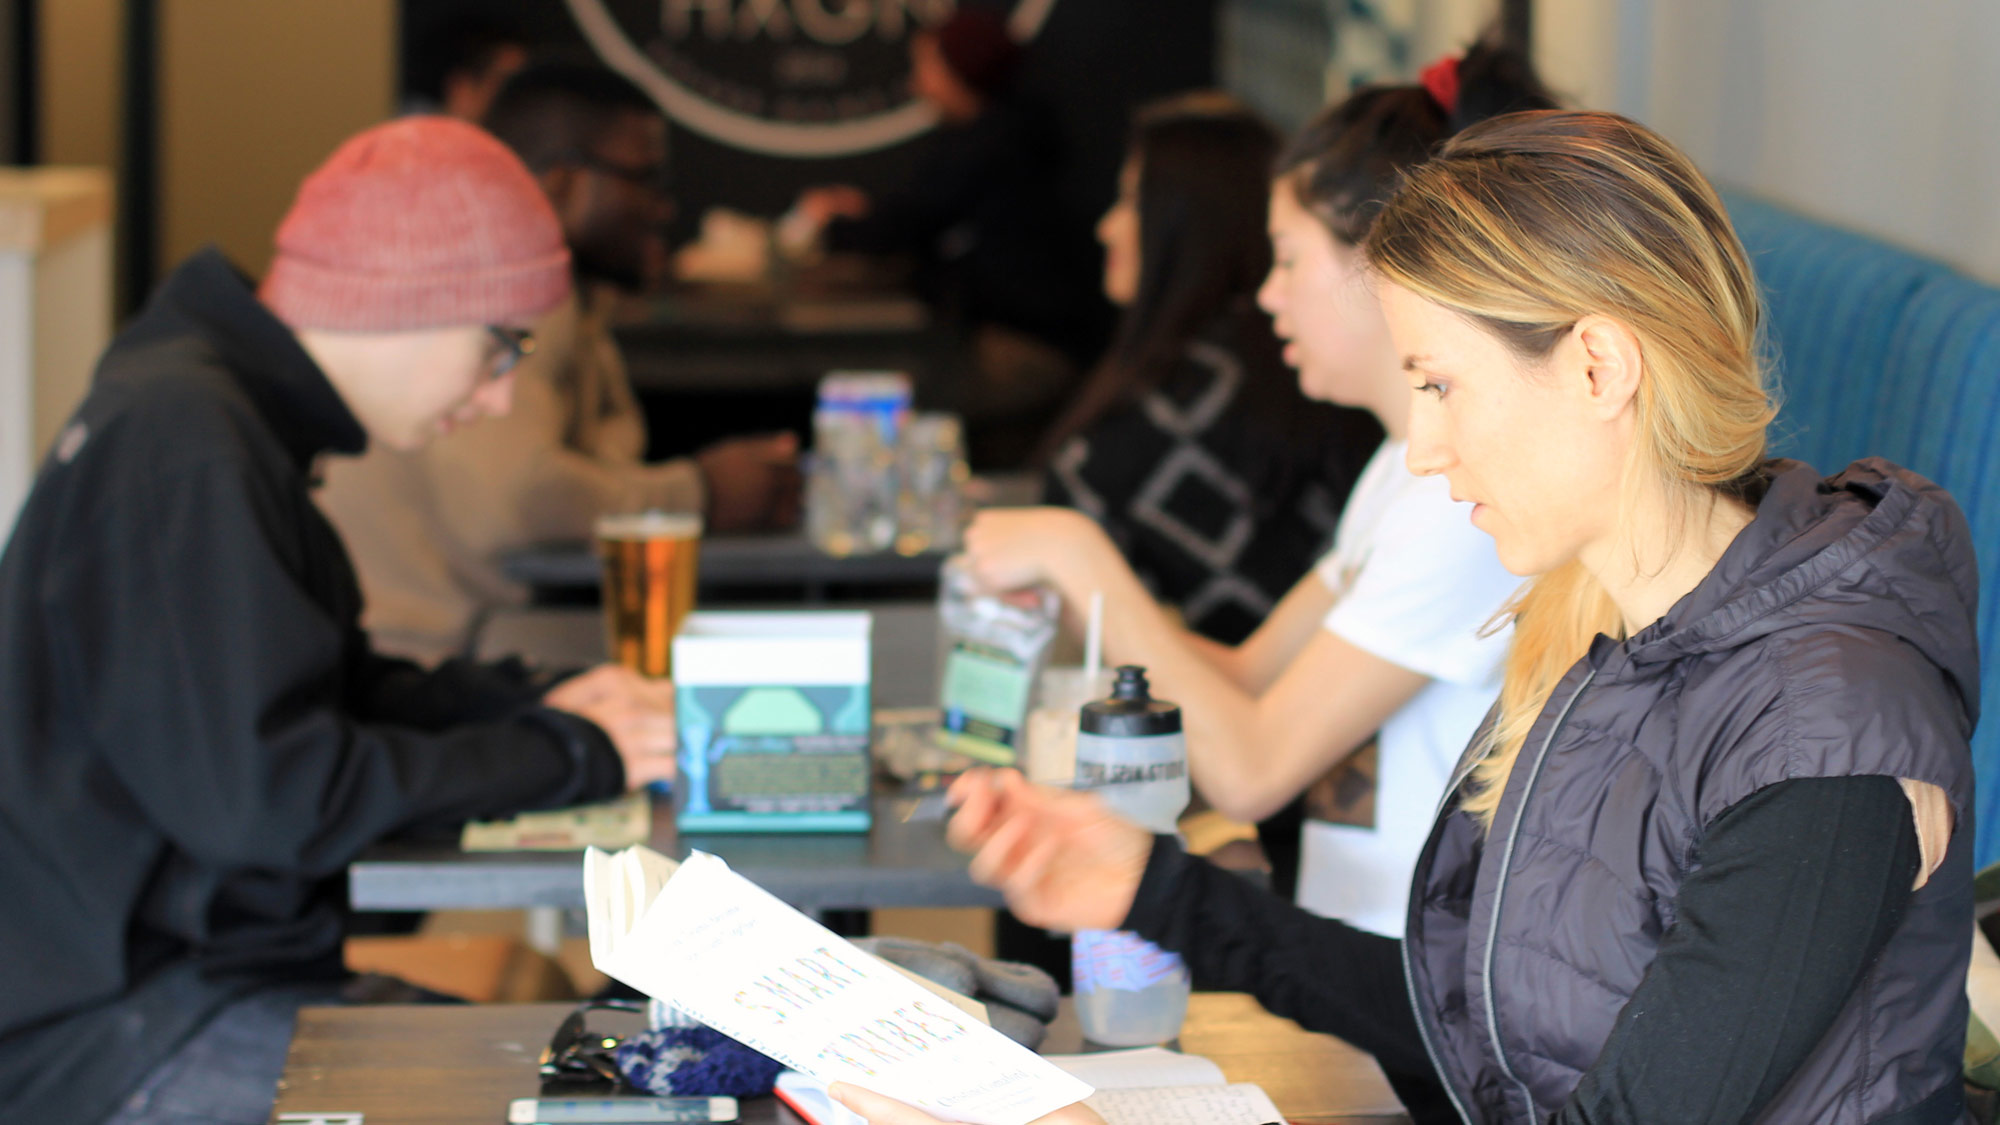 Play Games at The Hexagon Board Game Cafe